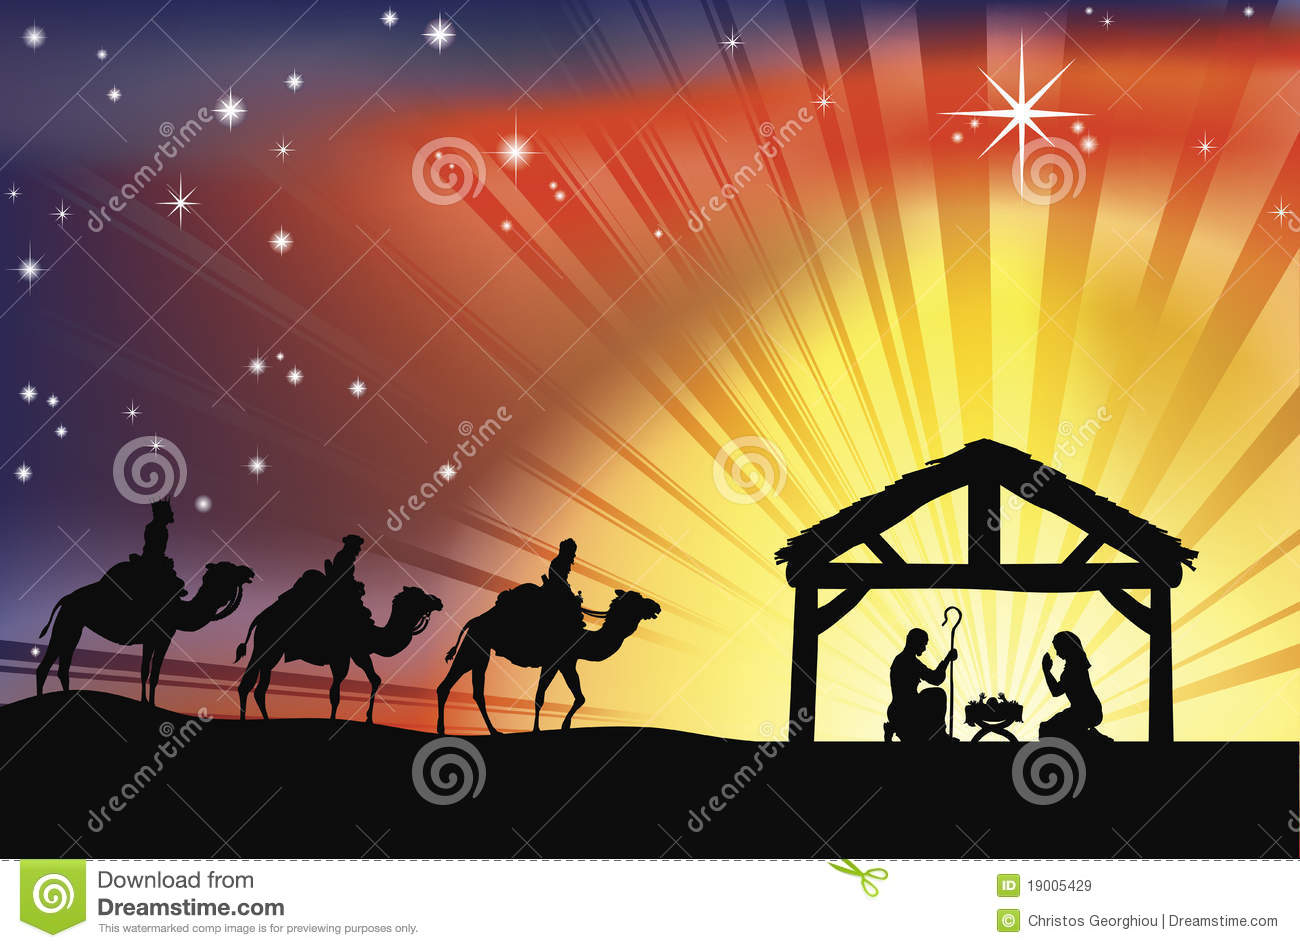 Download Wise Quotes Wallpapers Christian Christmas Nativity Scene Stock Vector